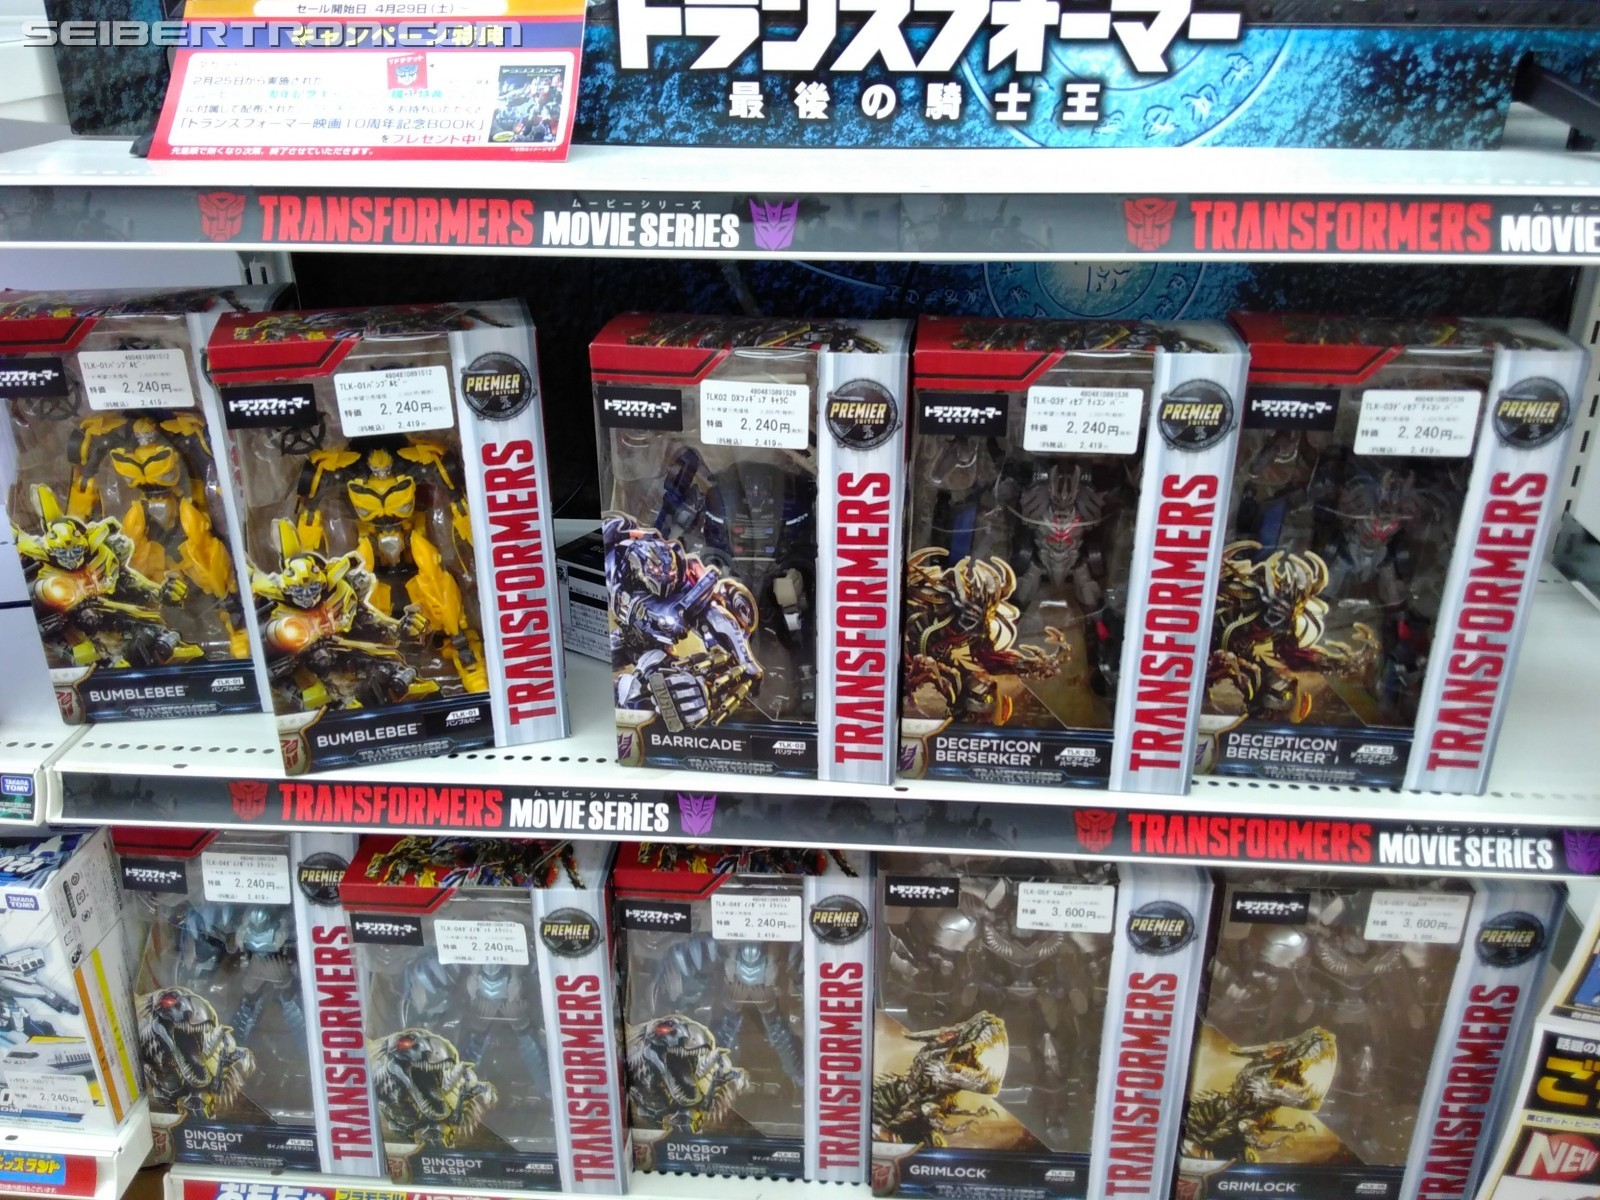 Transformers News: Takara Tomy Transformers: The Last Knight Toys Sighted at Japanese Retail